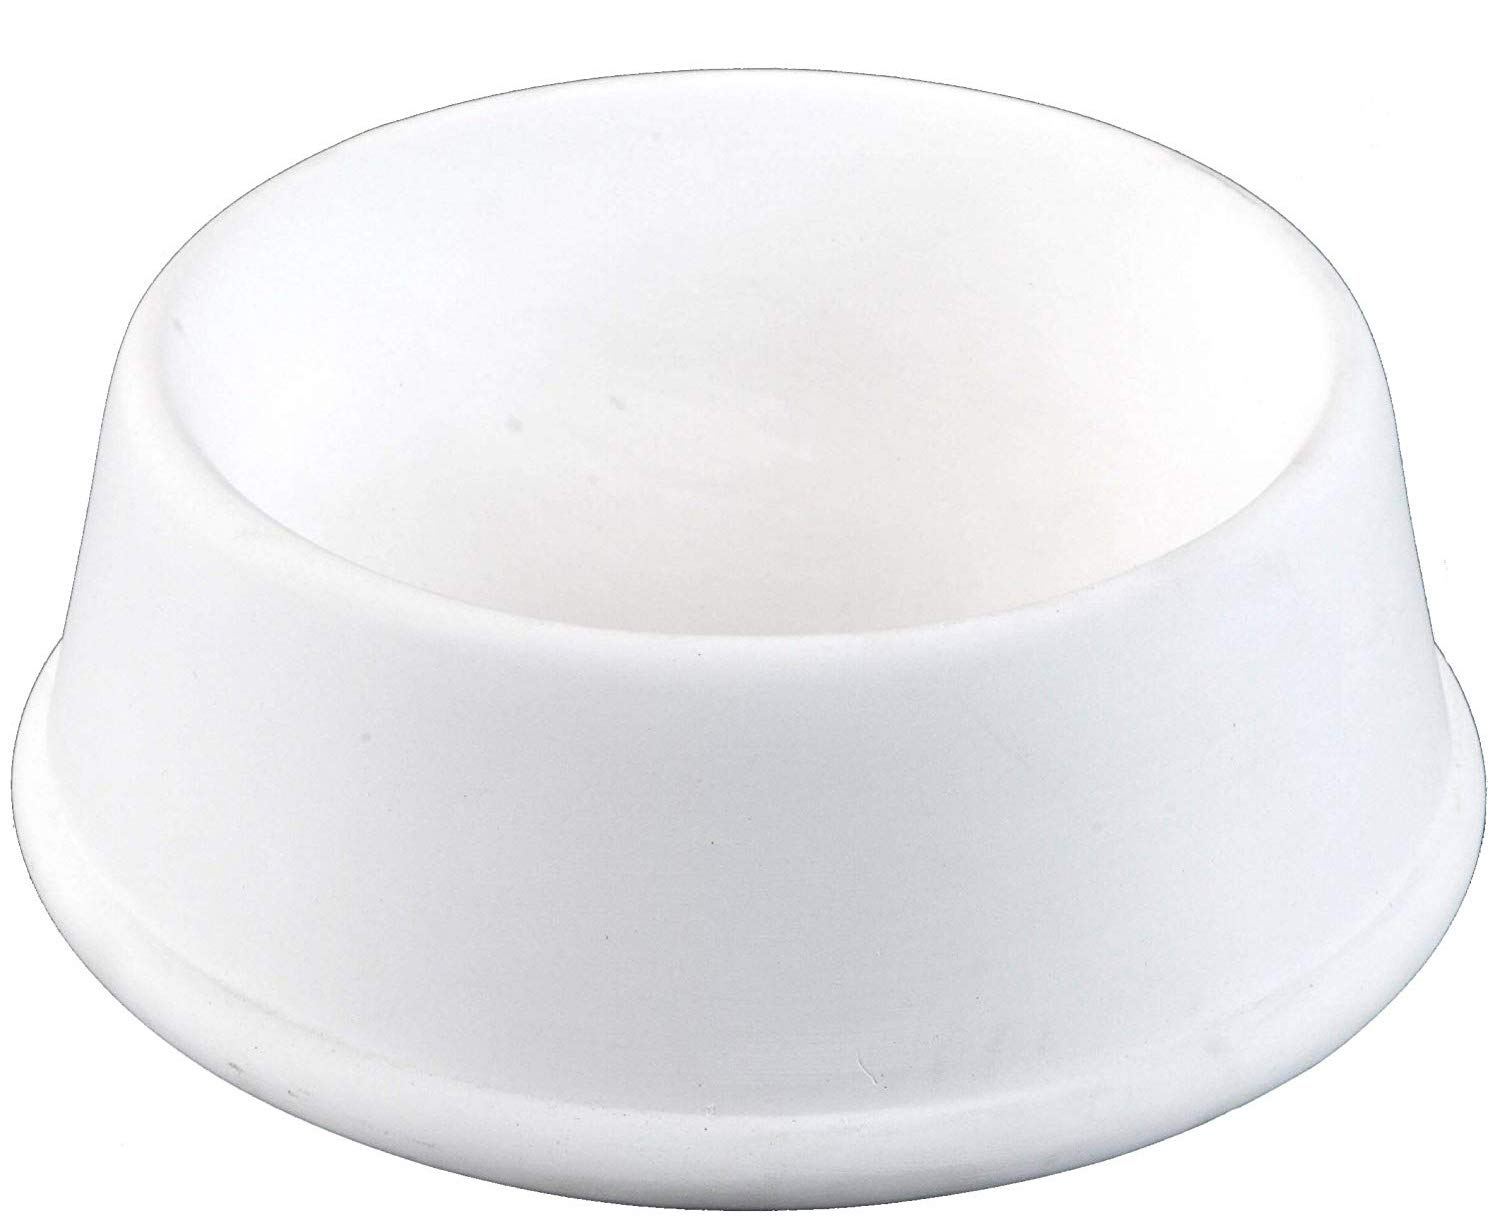 Creative Hobbies Small Pet Food Dish, Case of 6, Unfinished Ceramic Bisque, with How to Paint Your Own Pottery Booklet